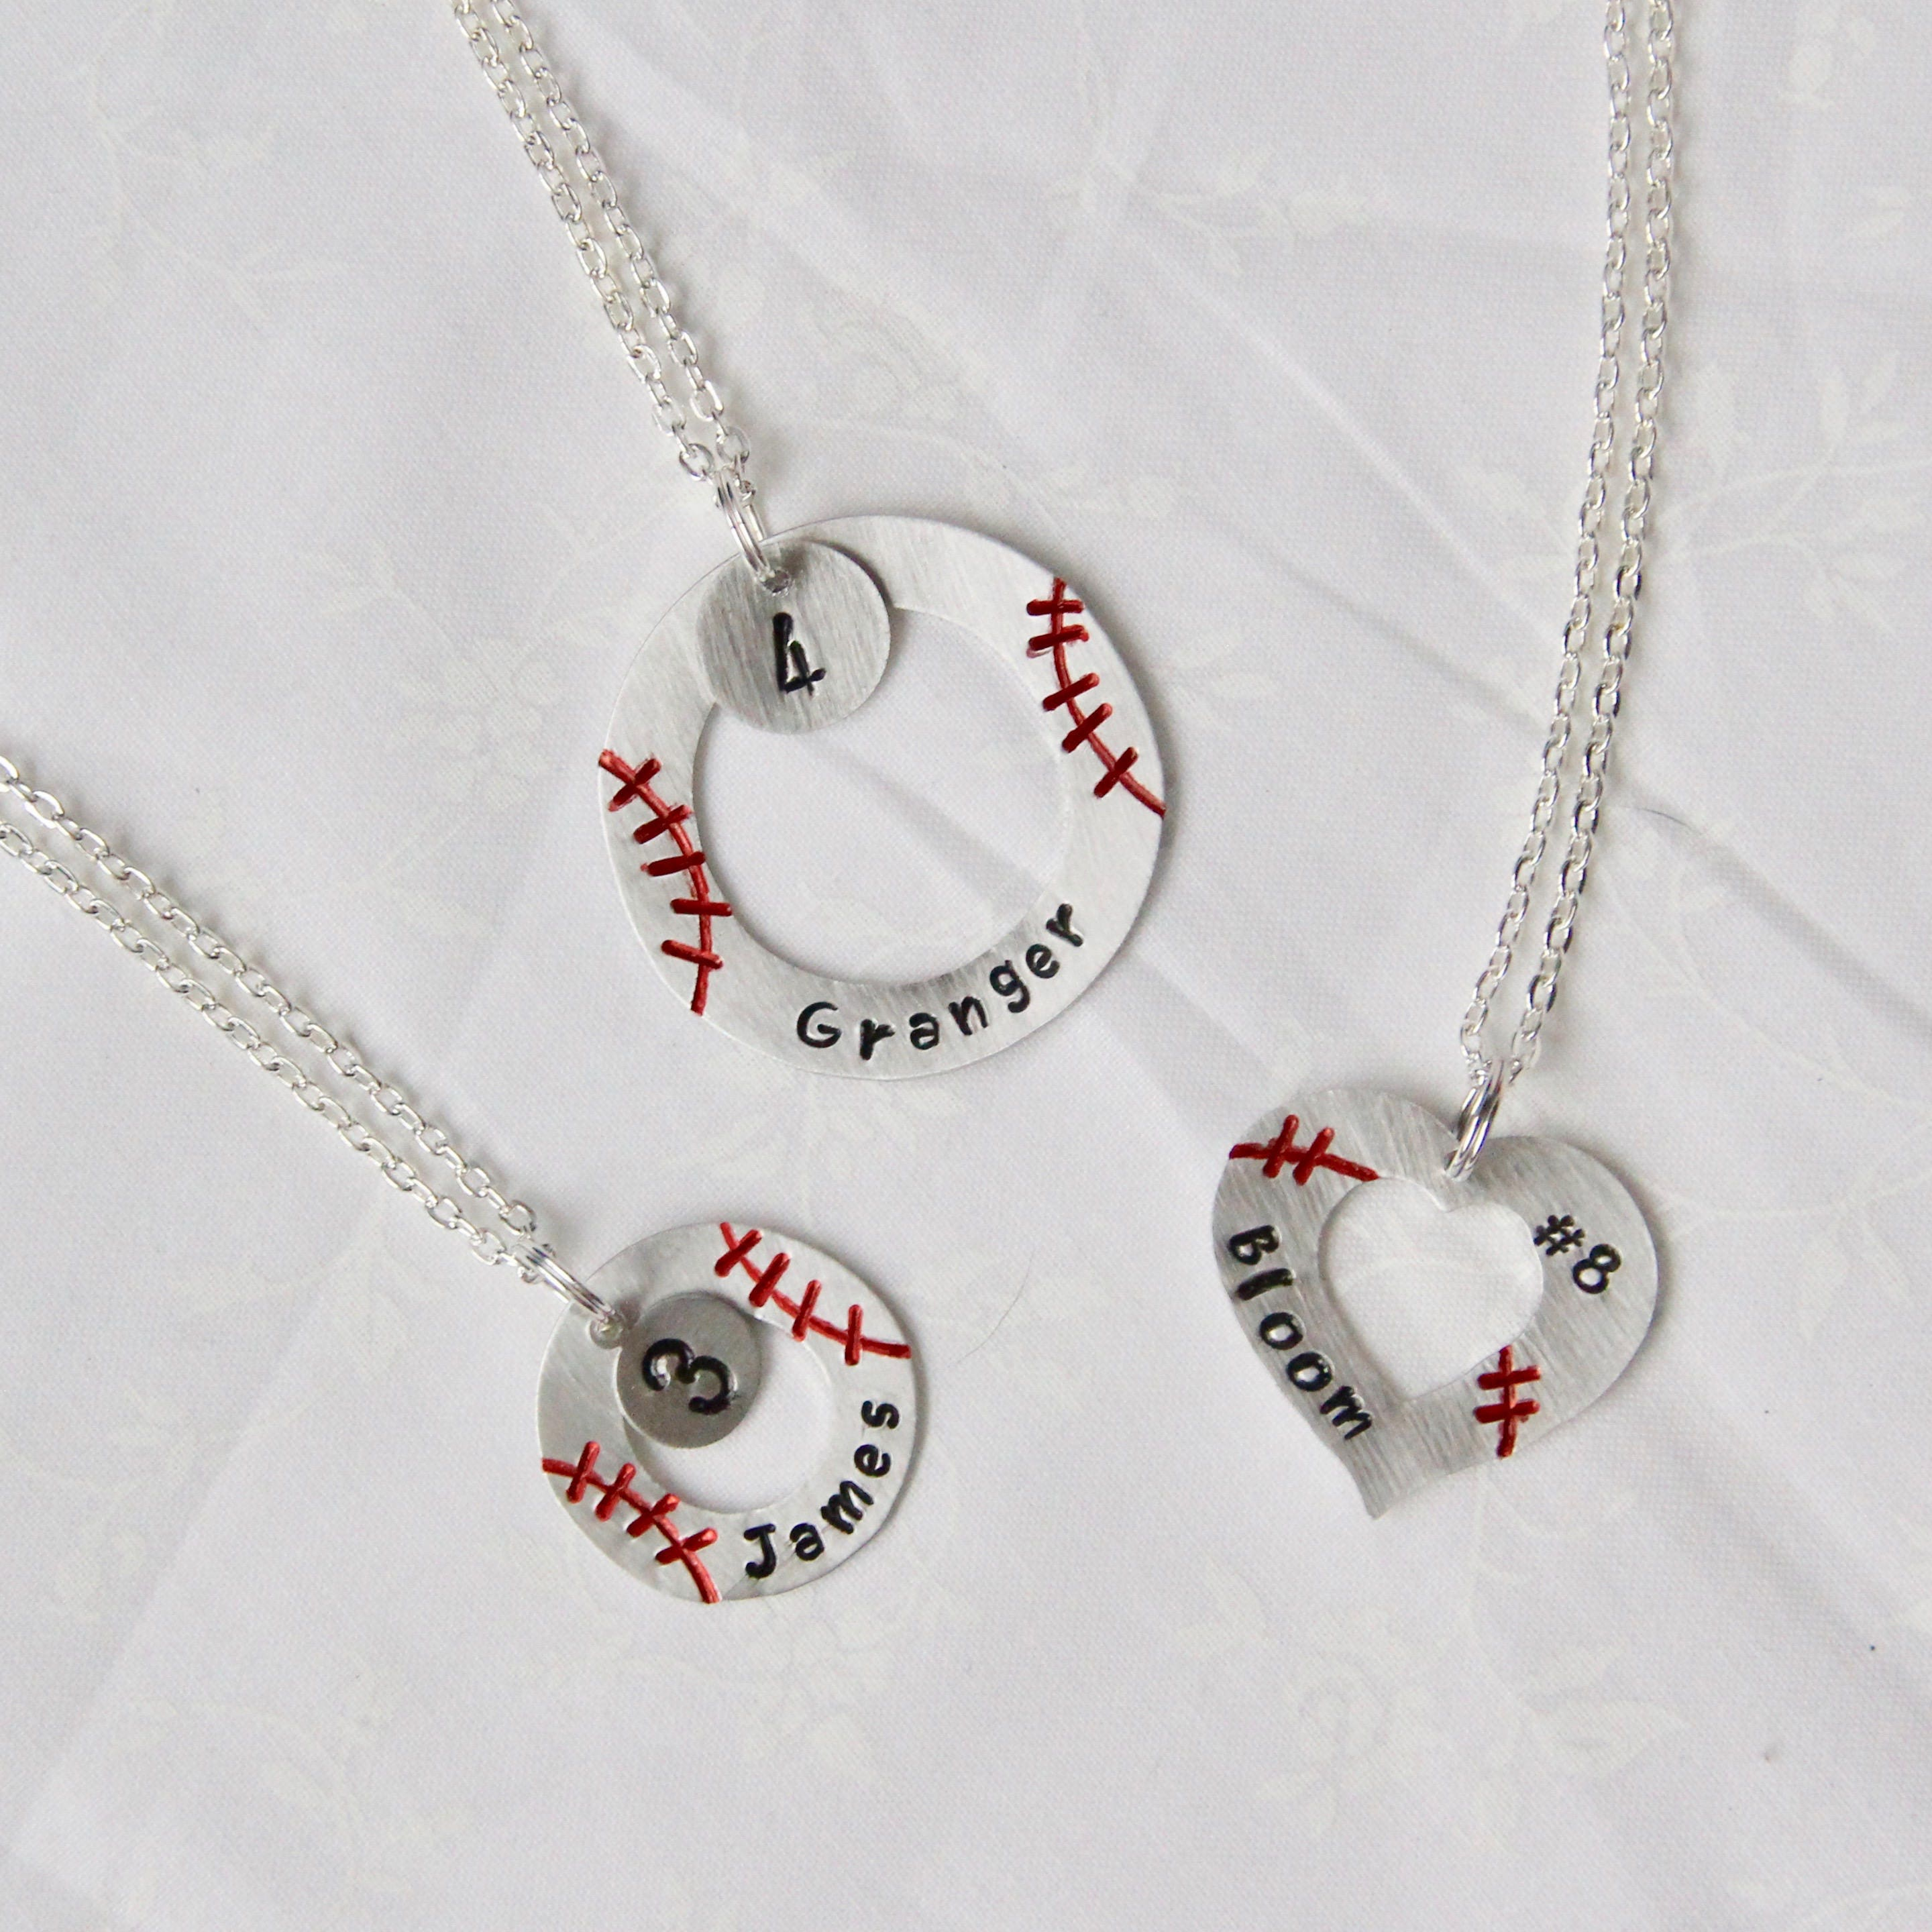 necklace stainless steel pendant baseball dog tag jewelry limoges engraved